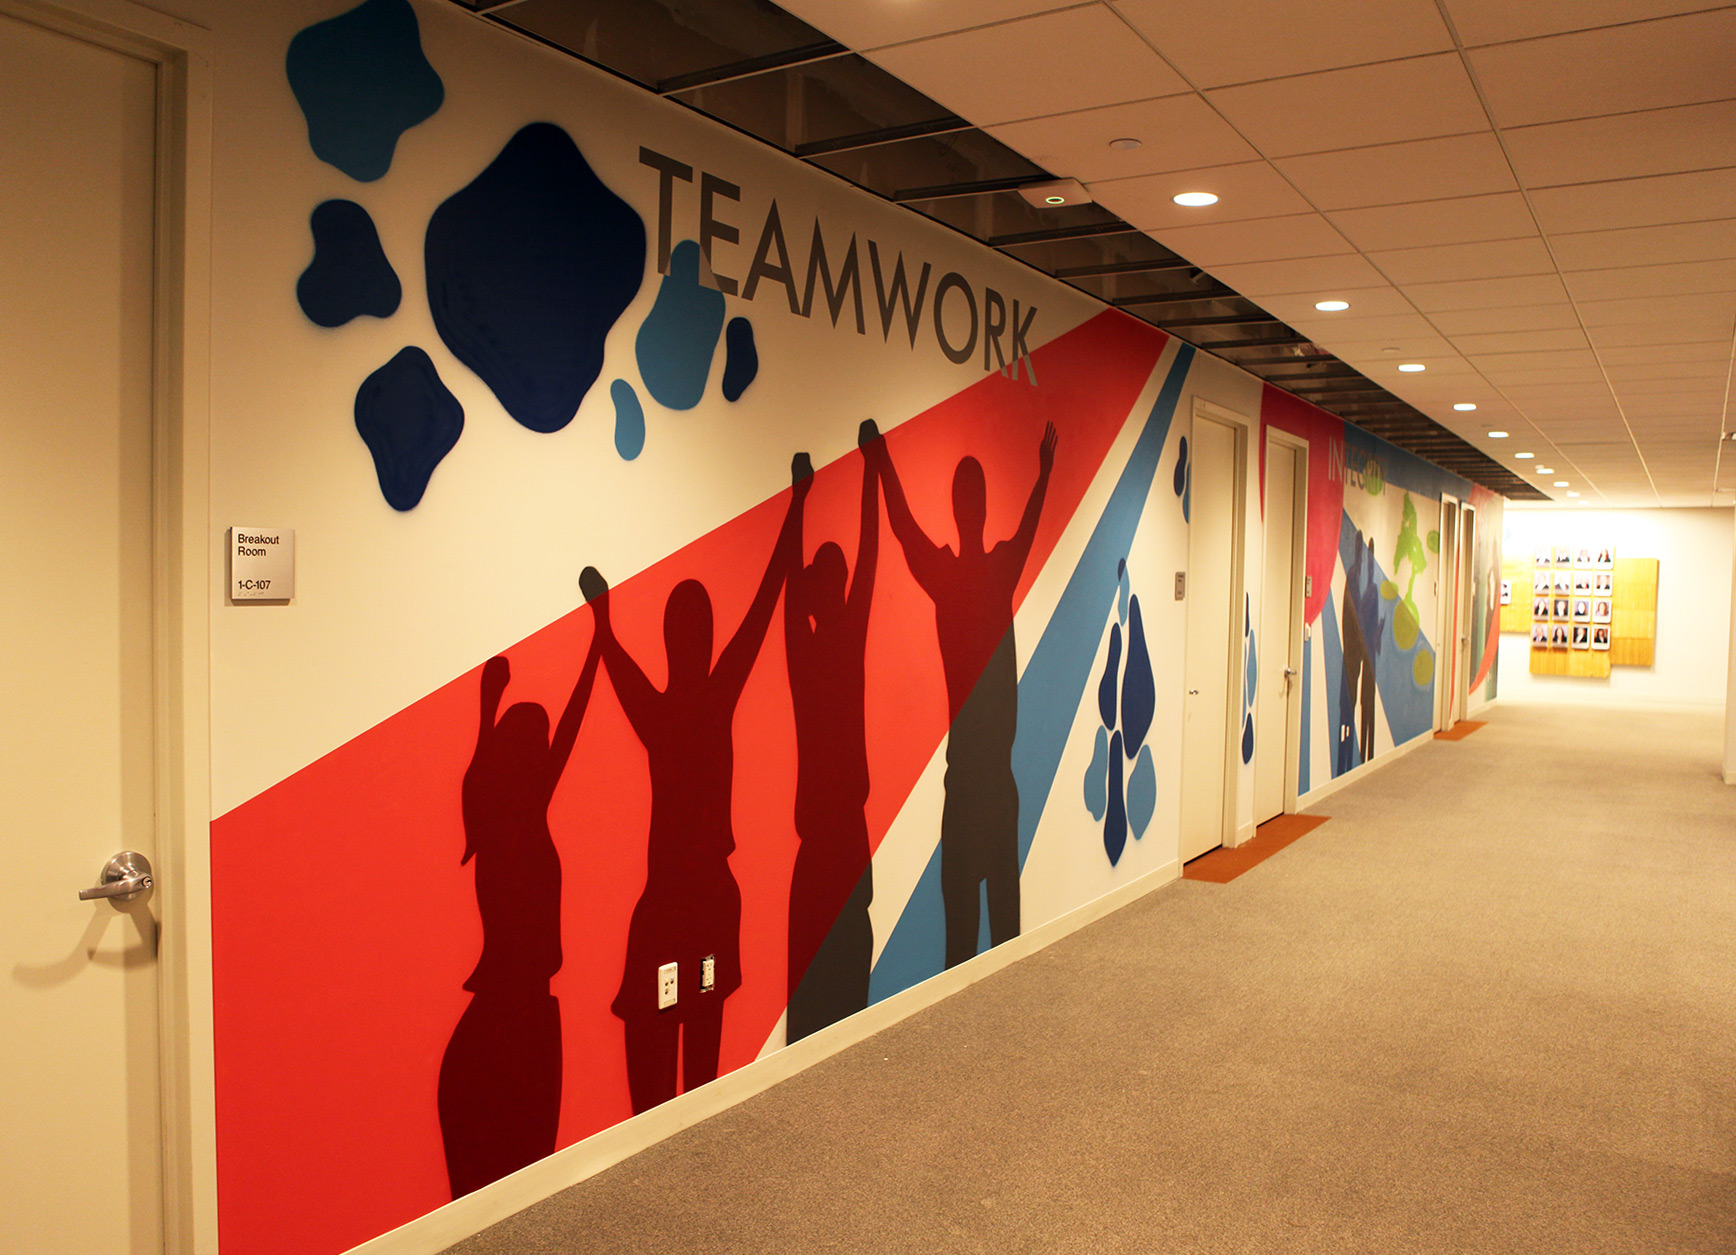 Teamwork street art mural in nj pharma graffiti usa for Corporate mural